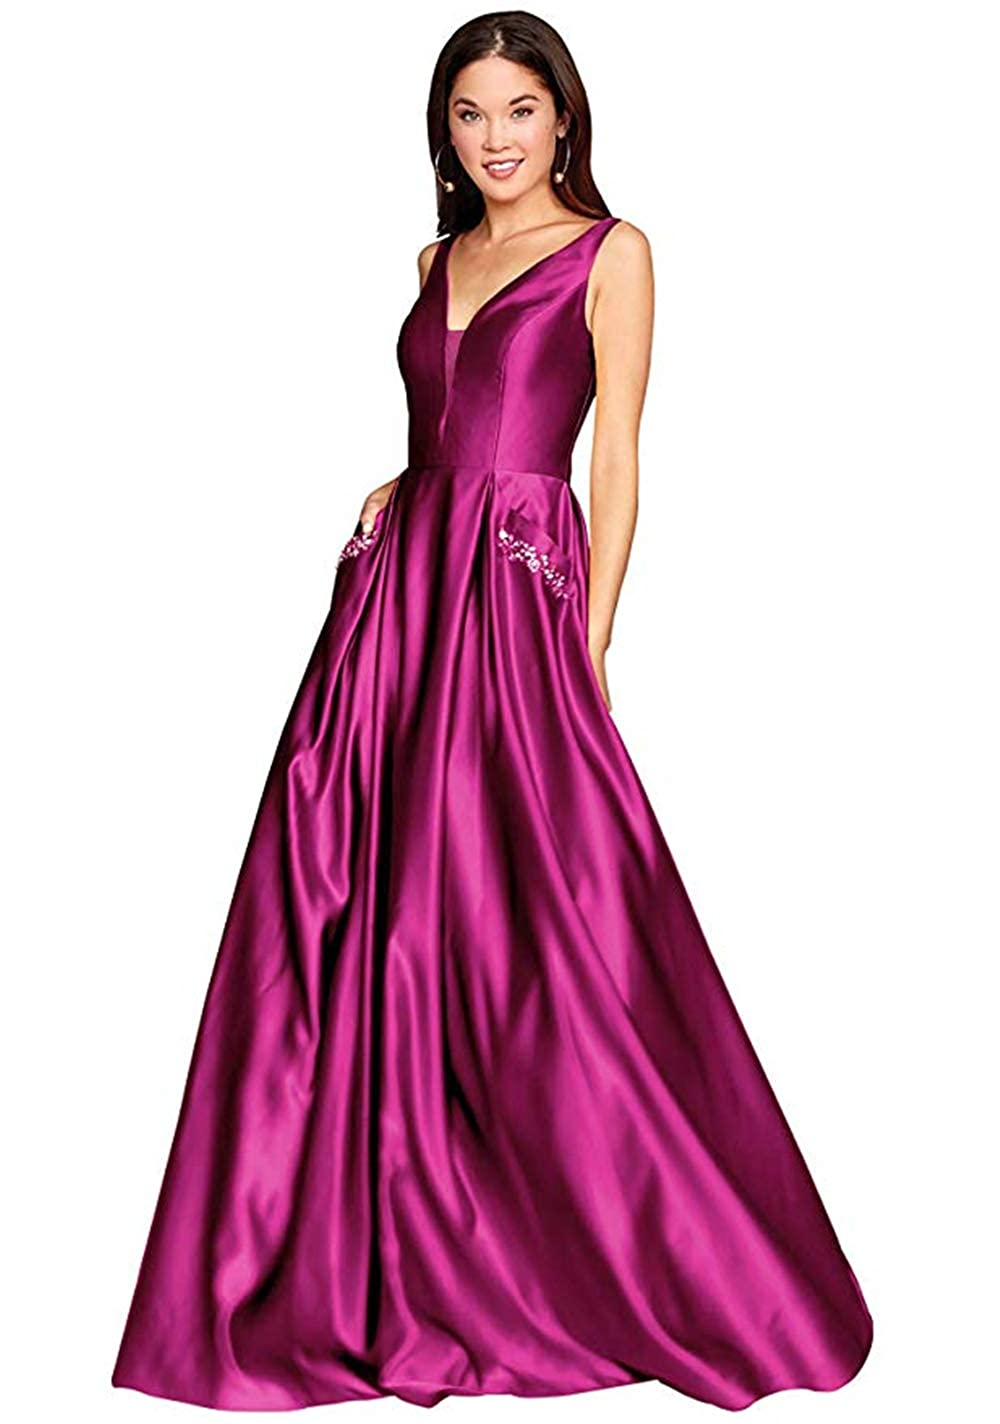 01hotpink PROMNOVAS Women's V Neck Backless Beaded Satin Prom Dress Long Formal Evening Gown with Pockets